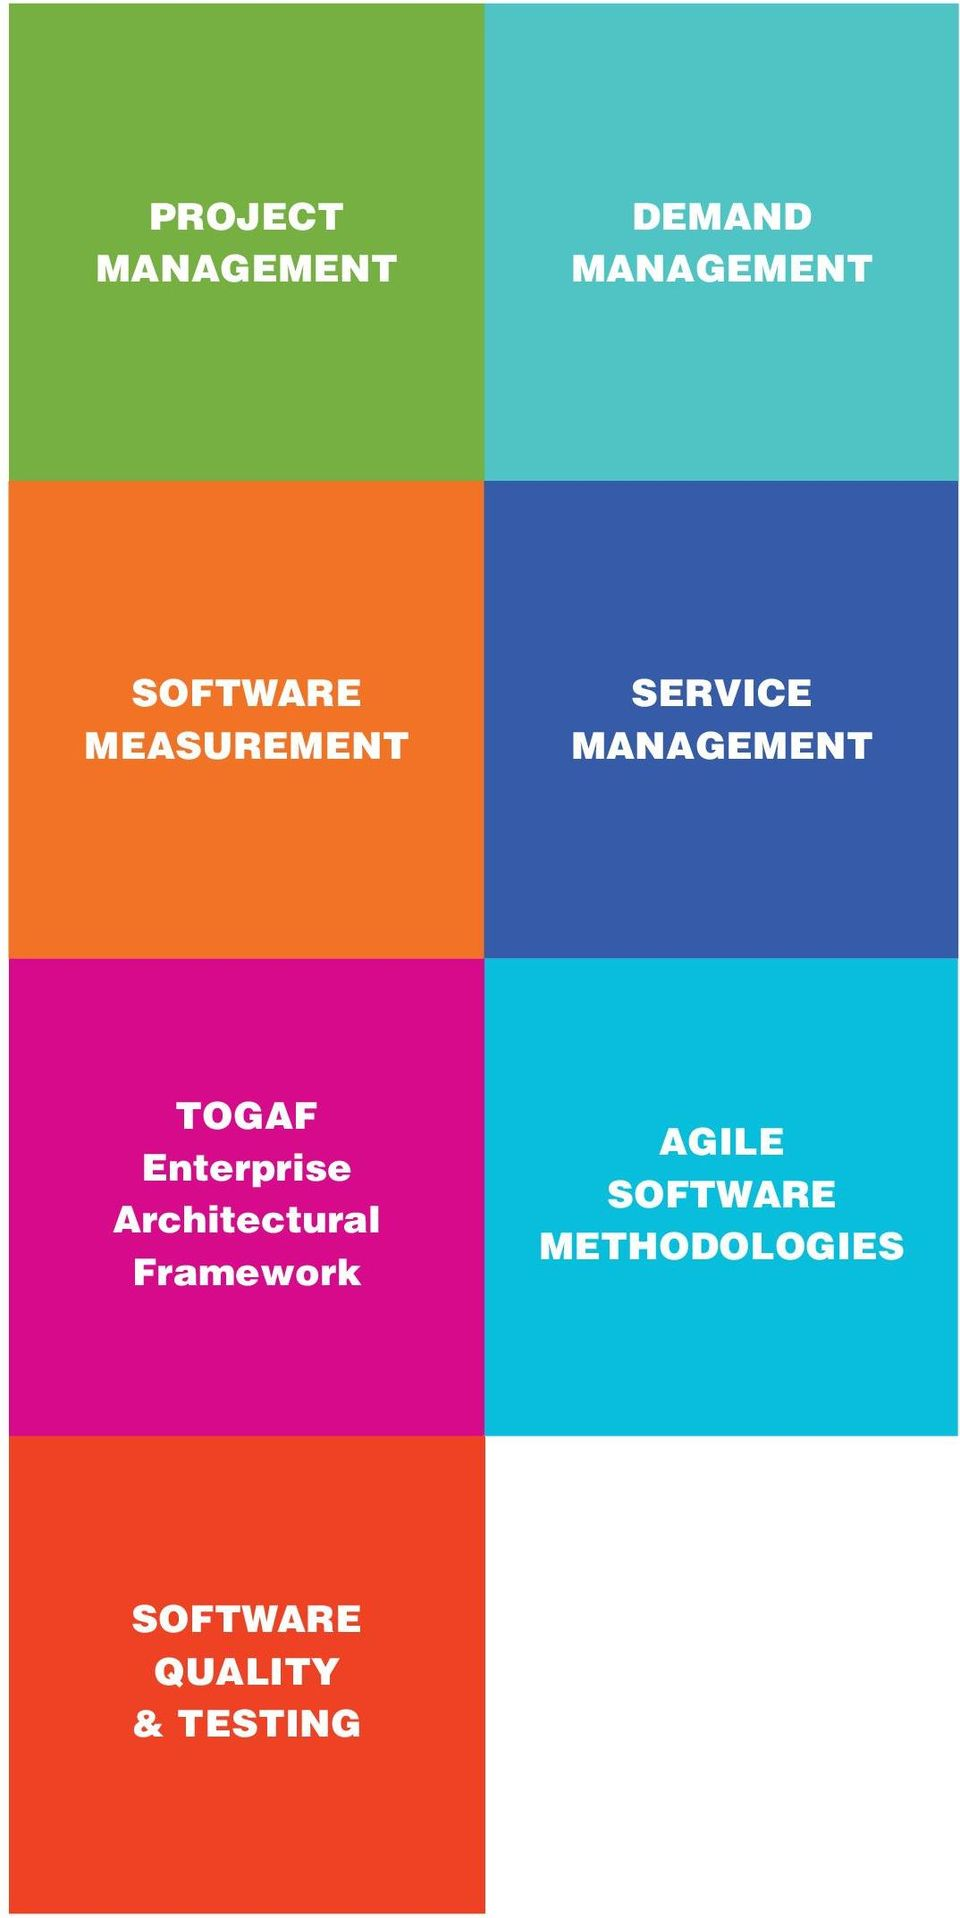 TOGAF Enterprise Architectural Framework